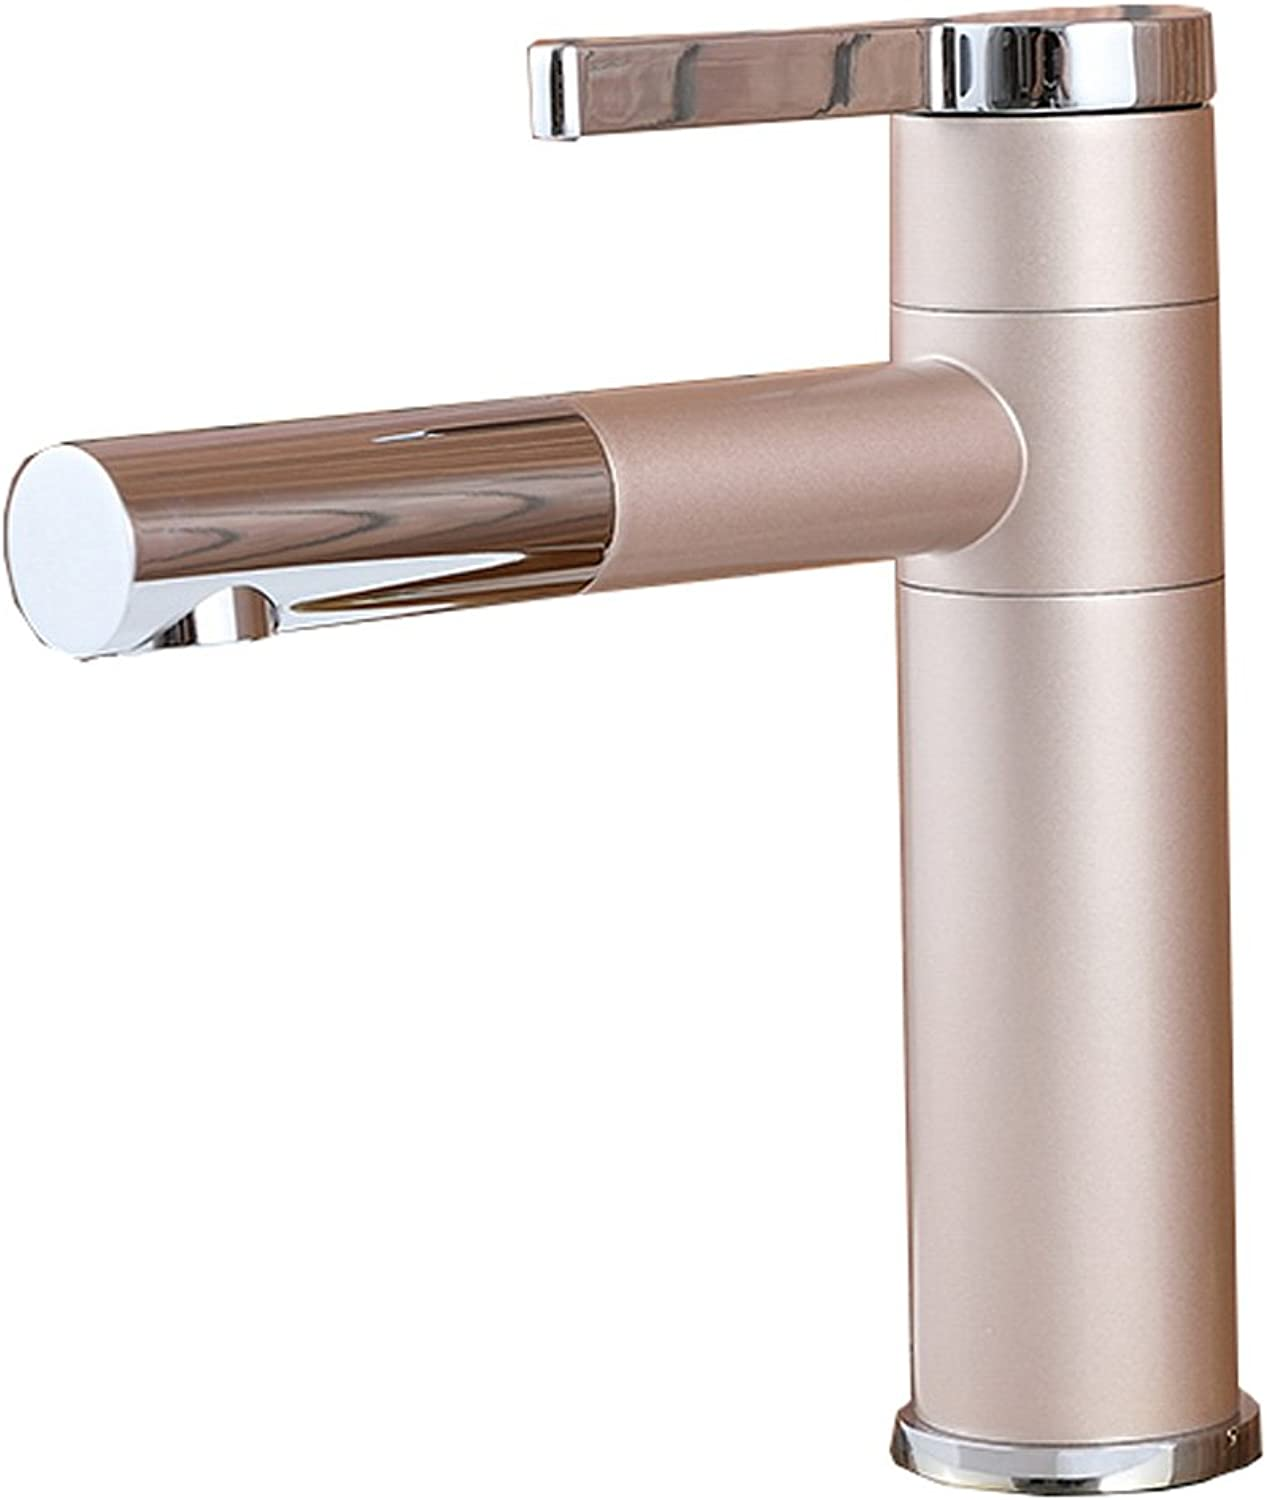 Bidet Taps pink gold Paint Faucet Single Hole Copper Hot And Cold Personality redatable Bathroom Wash Basin Mixing Valve Aperture 32MM To 45MM Can Be Installed